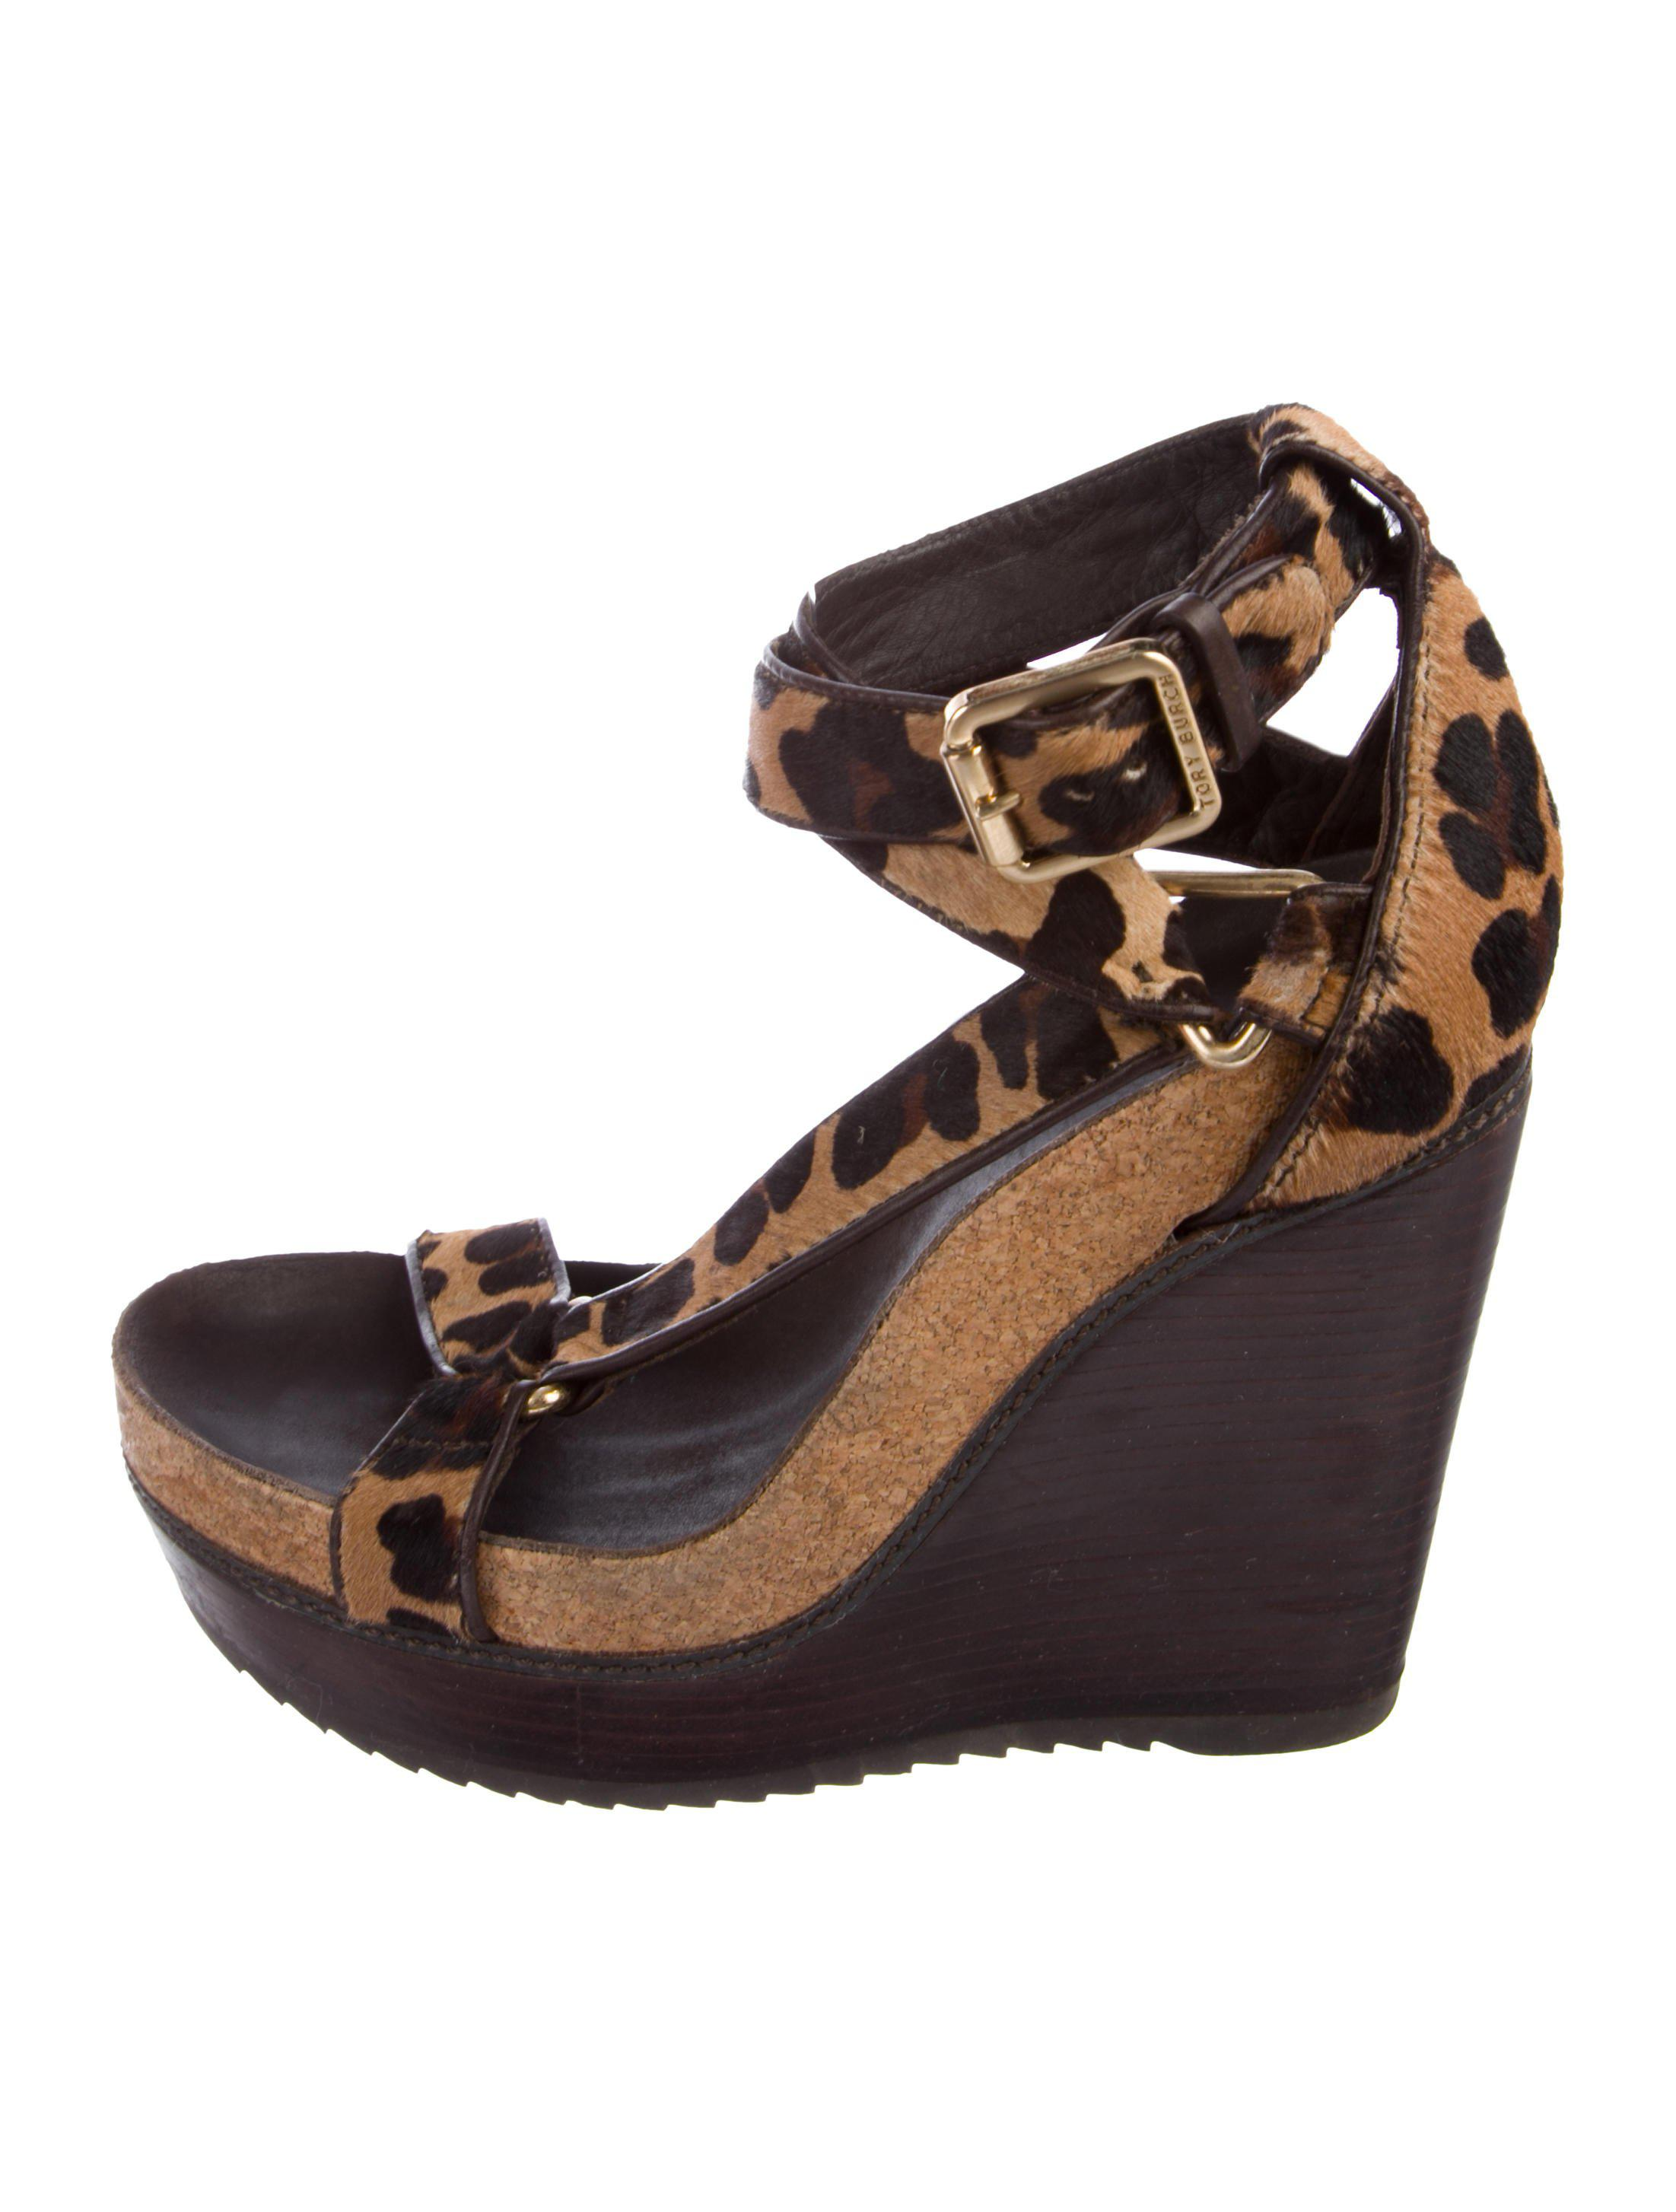 7f0bf0d6da72 Tory Burch - Natural Leather Brenden Wedges Brown - Lyst. View fullscreen